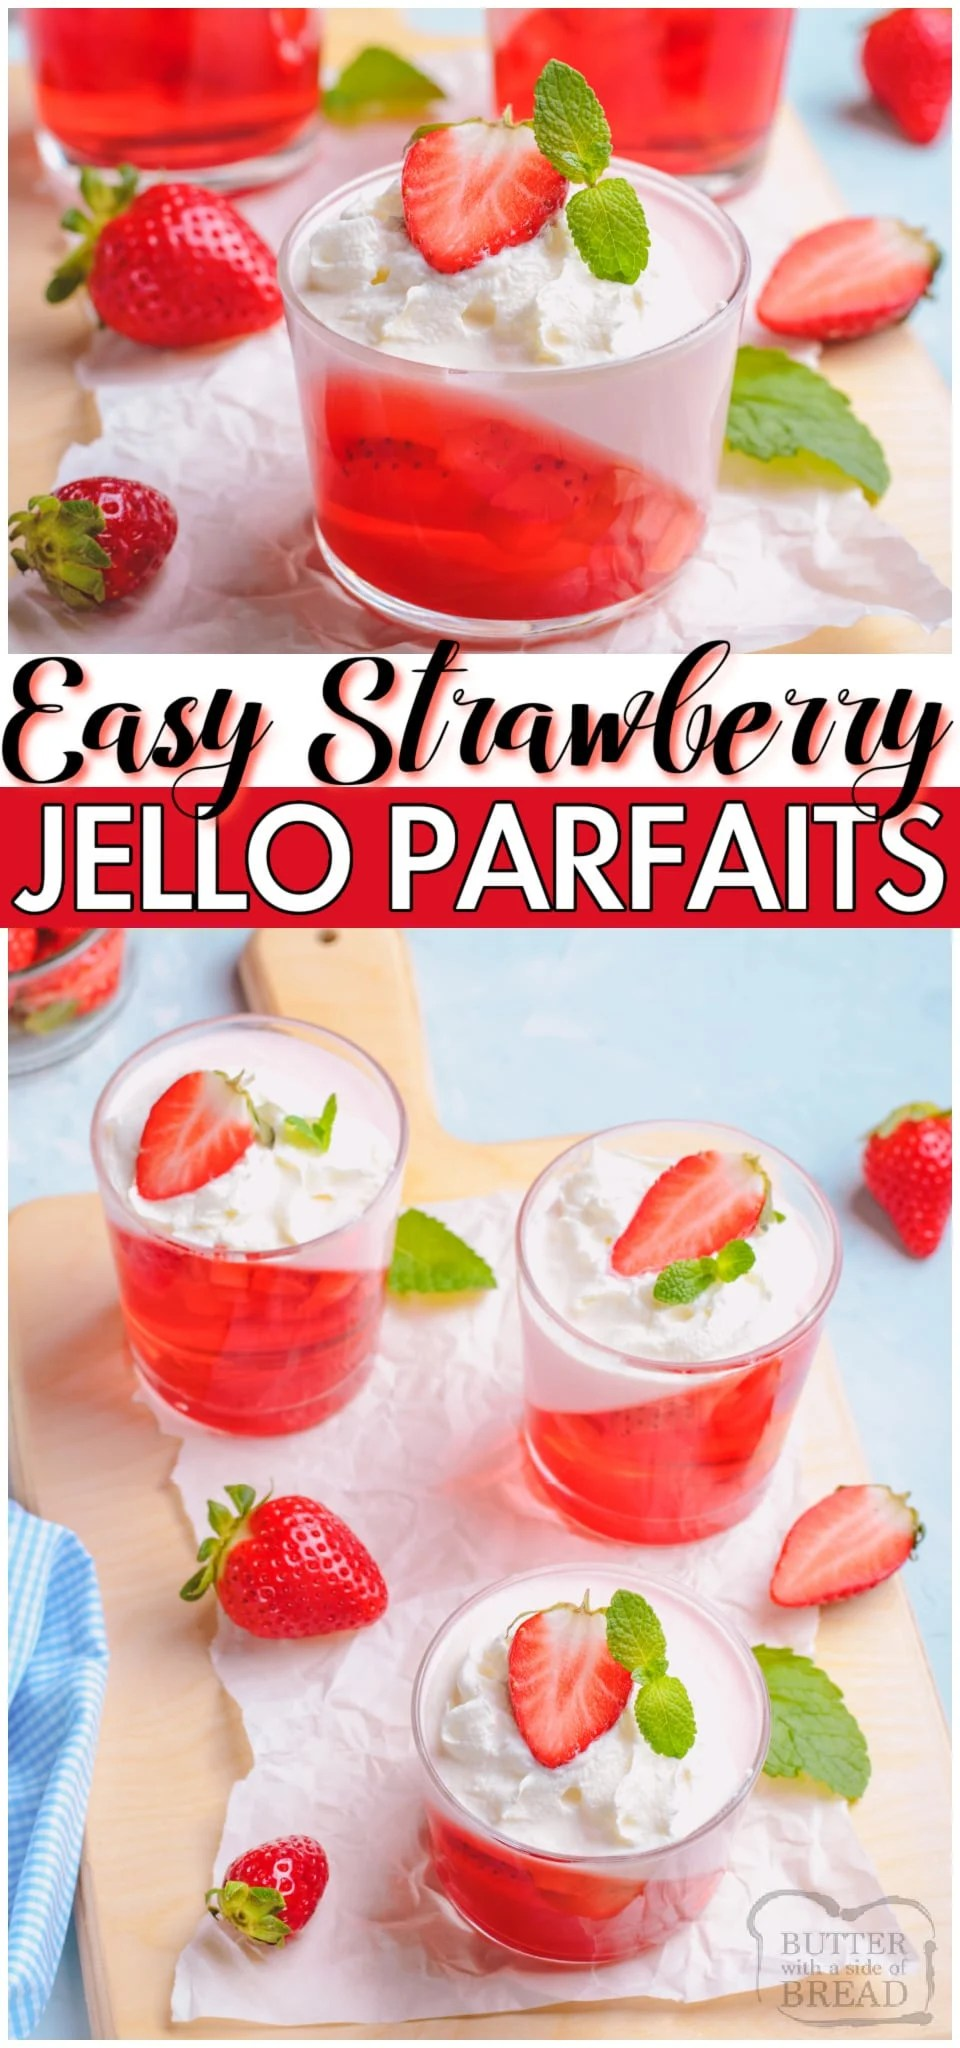 Pretty Strawberry Jello Parfaits made easy with just 3 ingredients! Strawberries, jello & whipped cream combine for a simple, elegant dessert. Fun & festive Jello recipe perfect for Valentine's Day or any occasion!